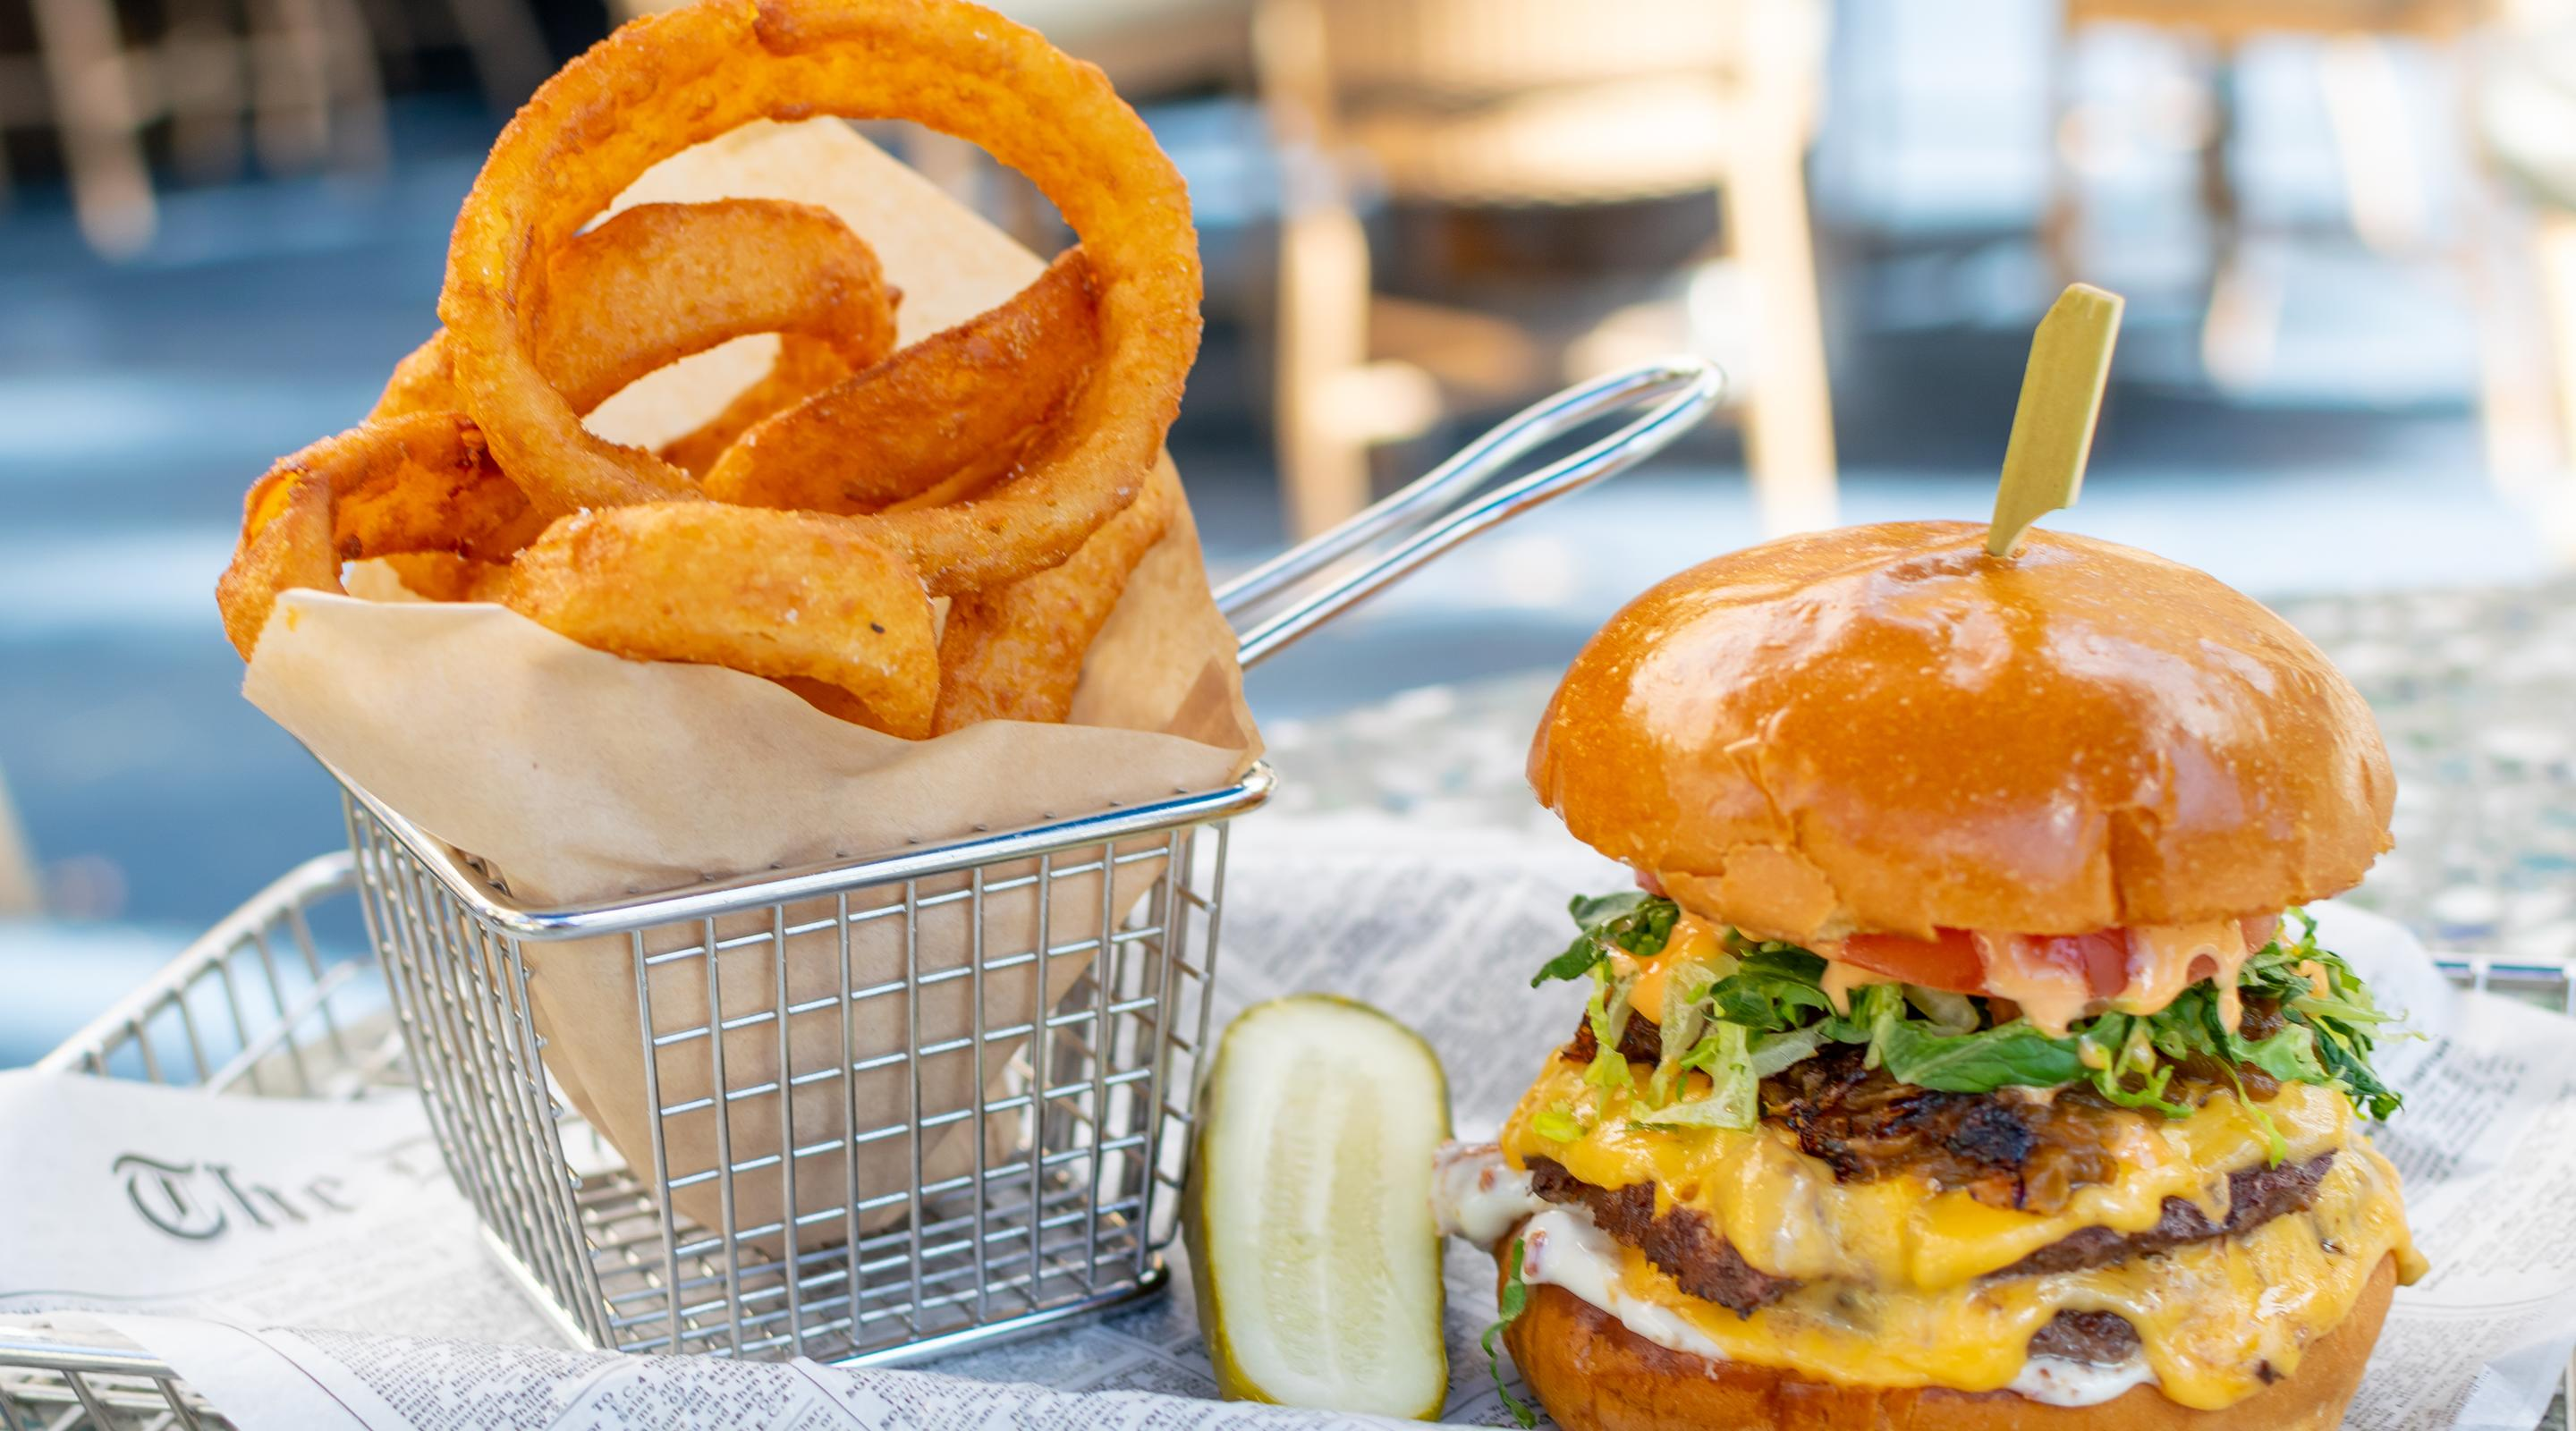 Enjoy a Paradise Burger as you slip away from the norm and enjoy the beautiful surroundings of Paradise Café.